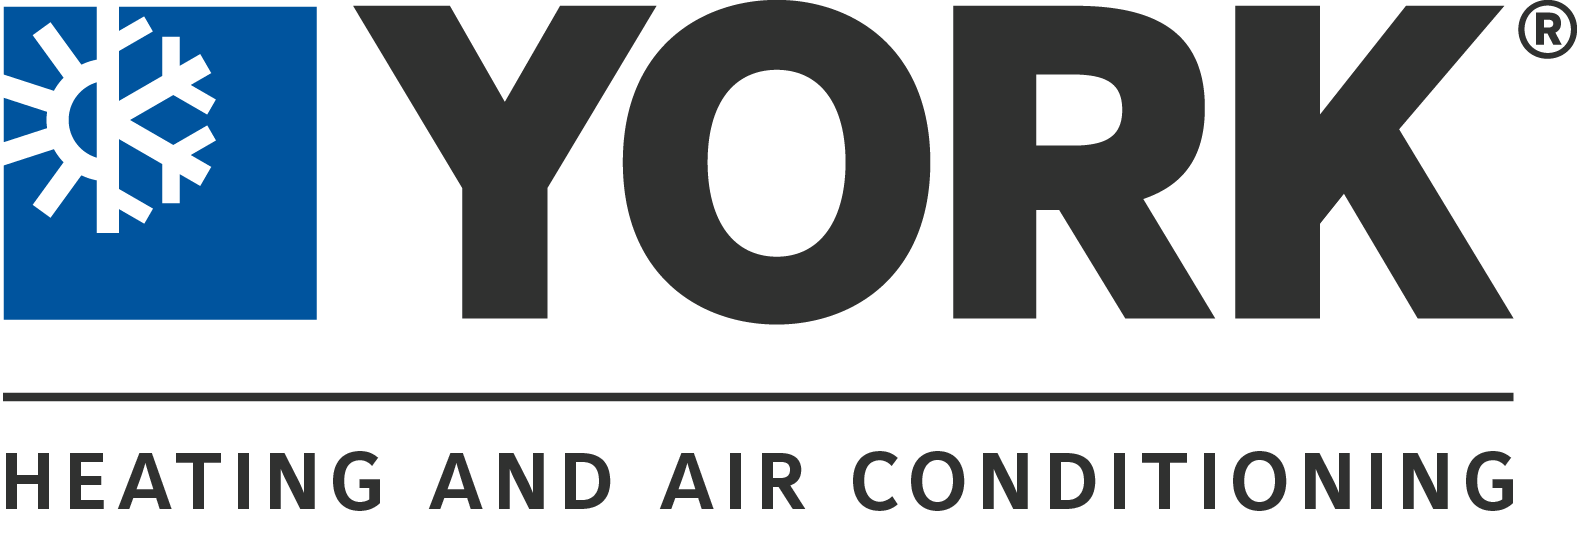 York Heating and Air Conditioning Dealers in AB